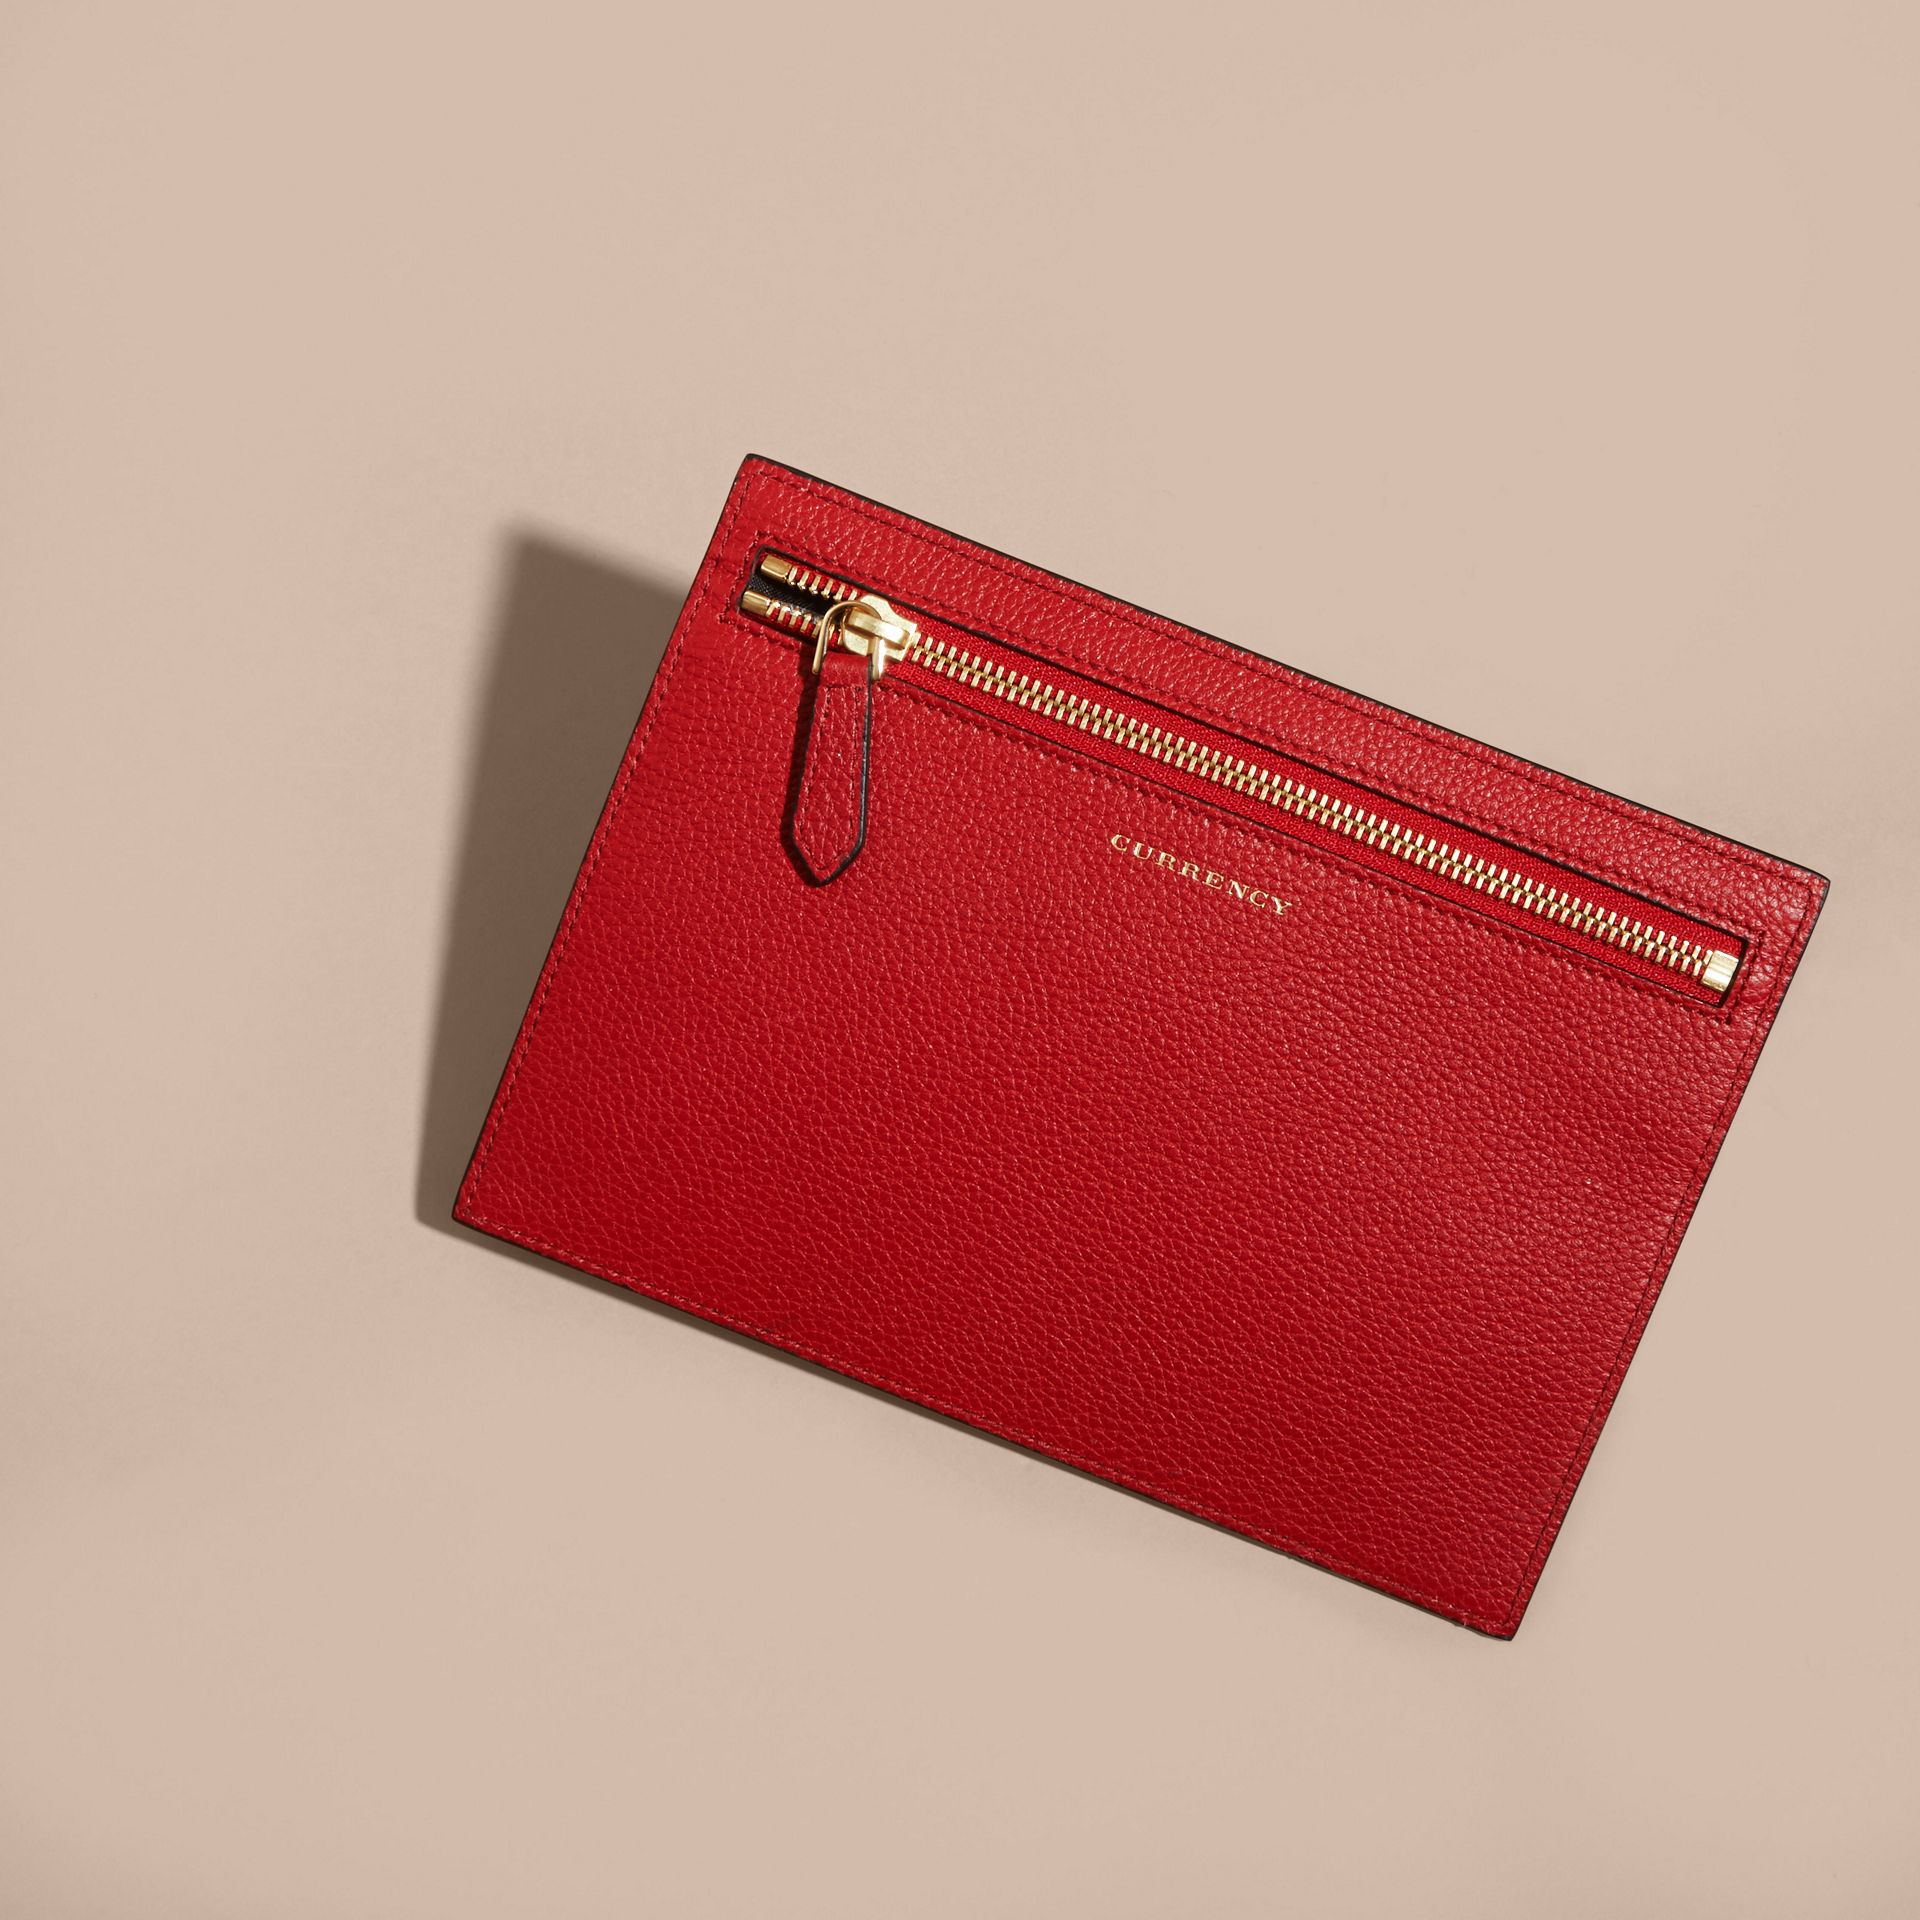 Grainy Leather Currency Wallet in Parade Red | Burberry - gallery image 4